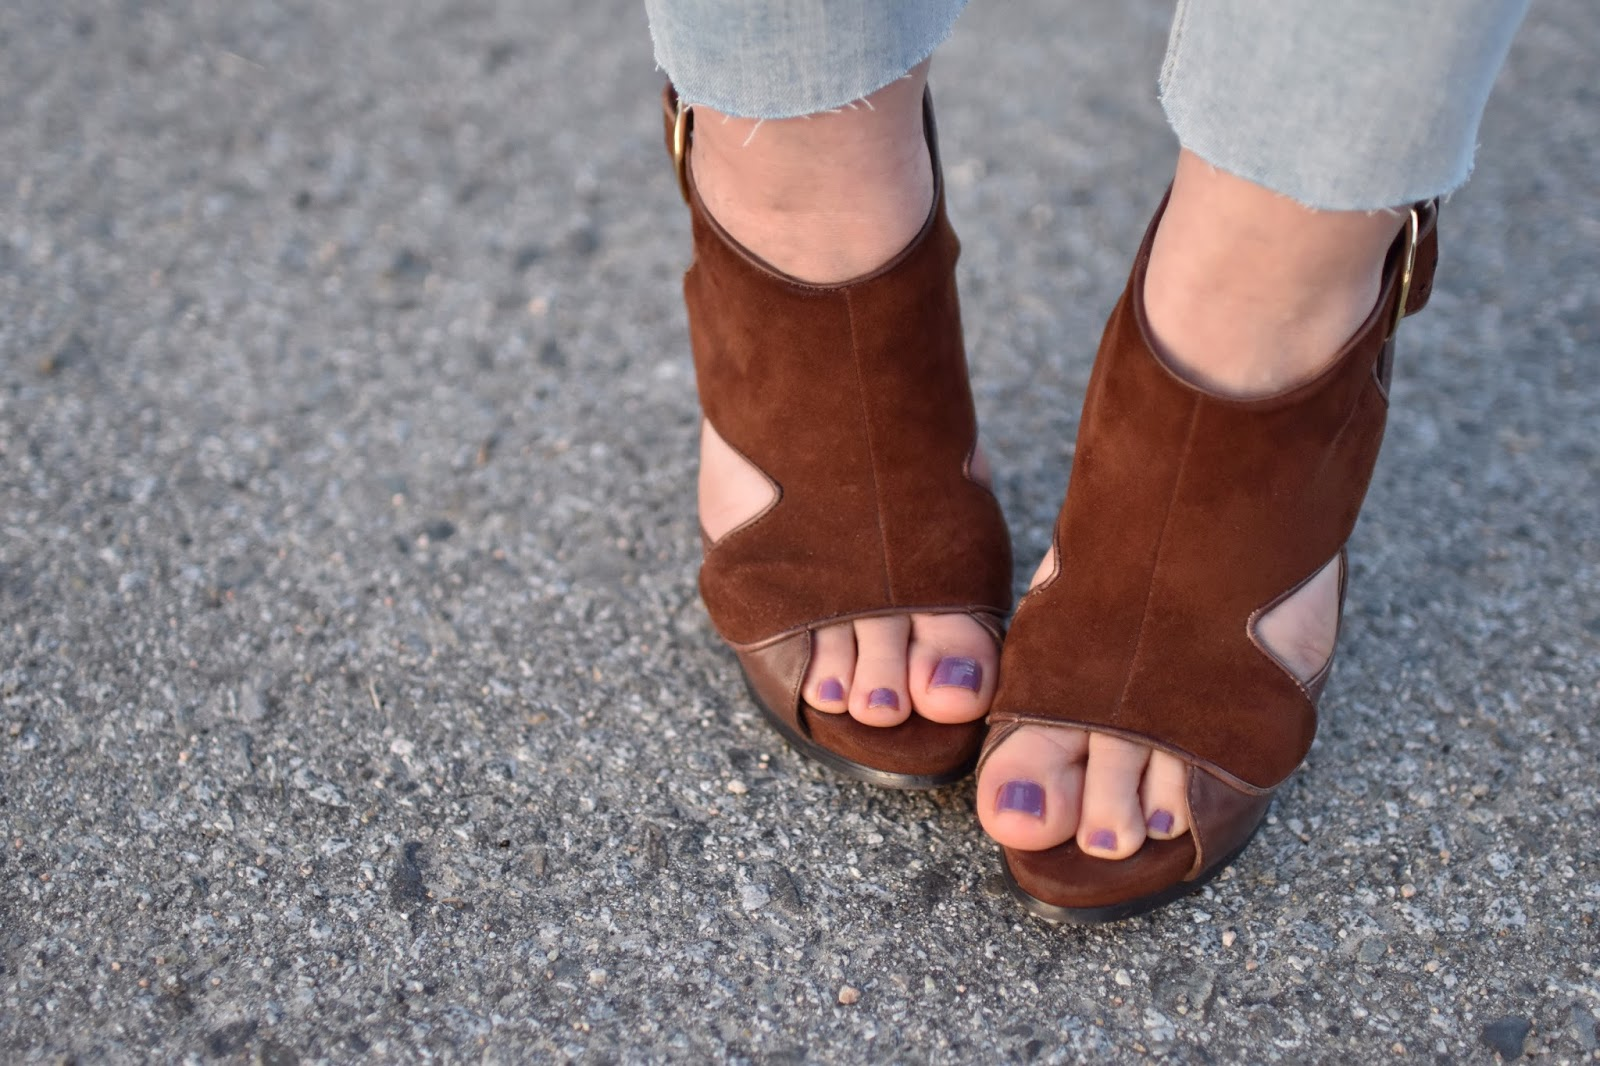 Monika Faulkner outfit inspiration - brown suede open-toe shoes